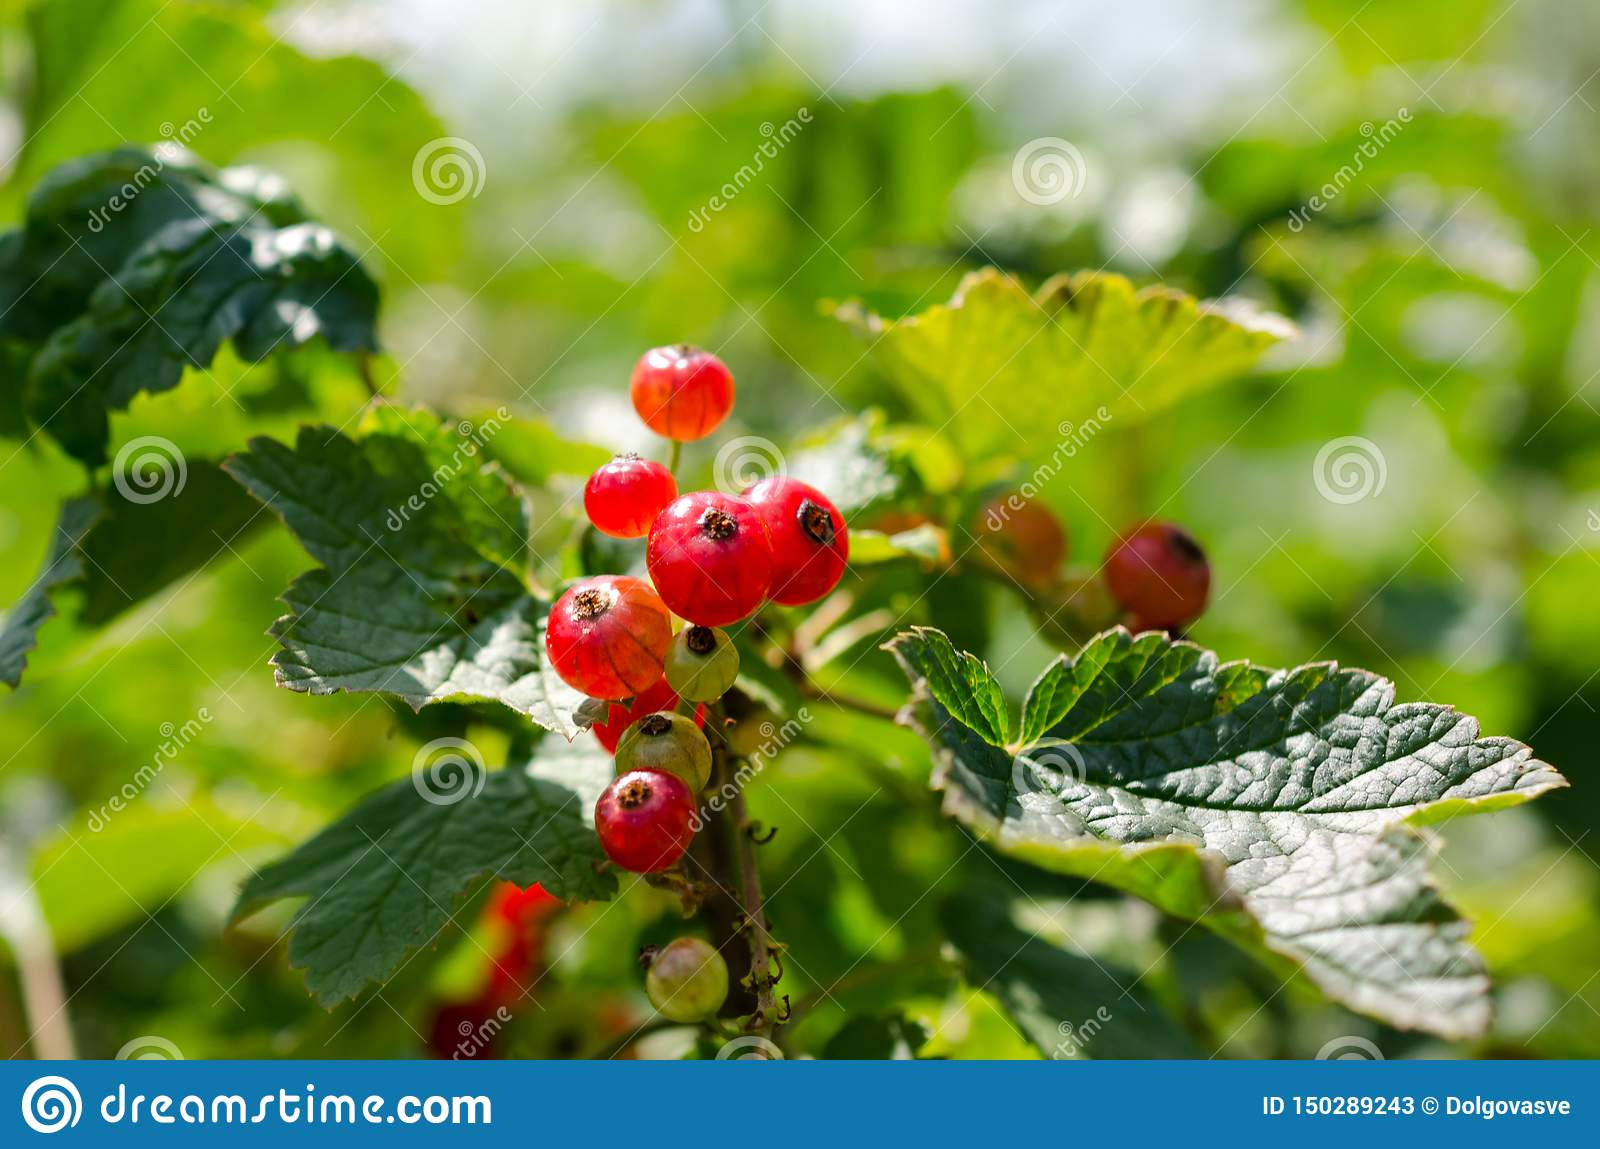 Summer harvest, red currant grows on a bush in the garden